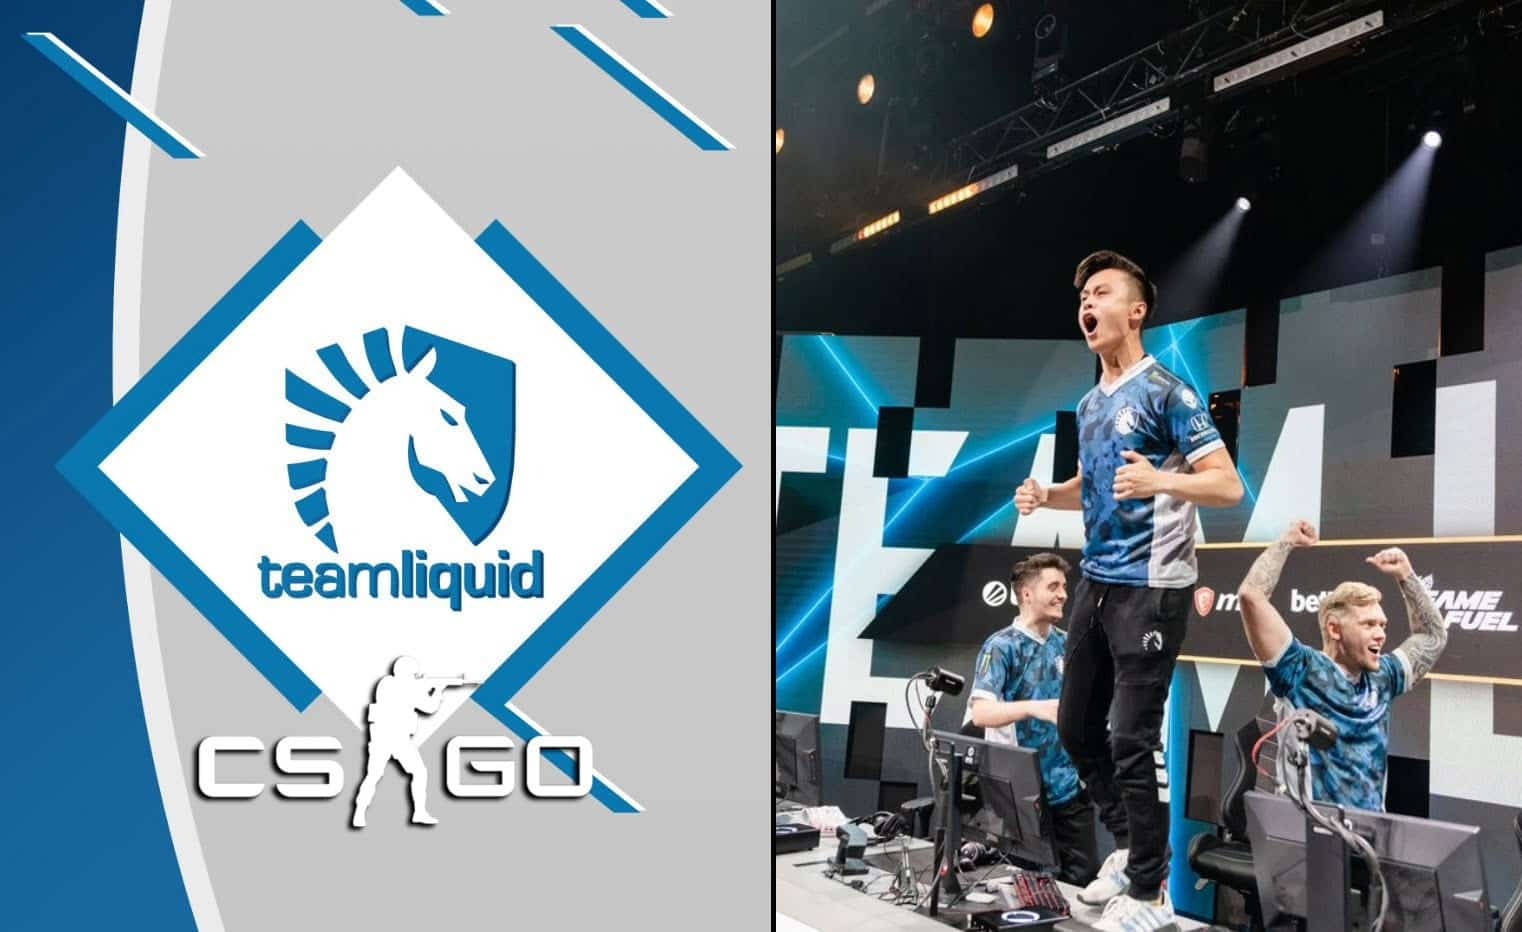 Analysis Of Team Liquid's Achievements From Chokers To Champions